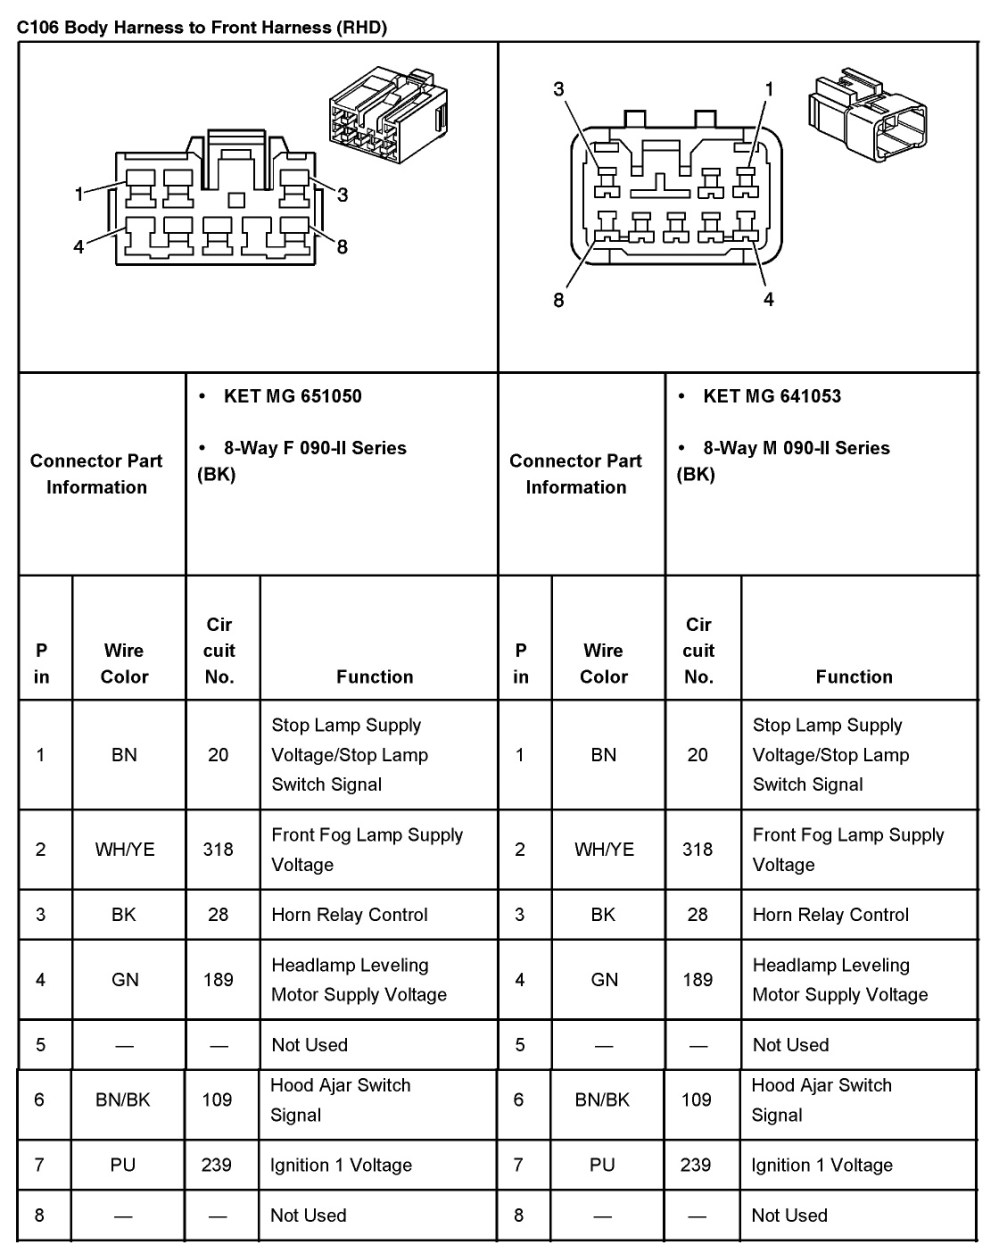 medium resolution of 2006 chevy aveo fuse box wiring library rh 4 ayazagagrup org 2010 chevy aveo stereo wiring diagram 2010 chevy aveo fuse box location